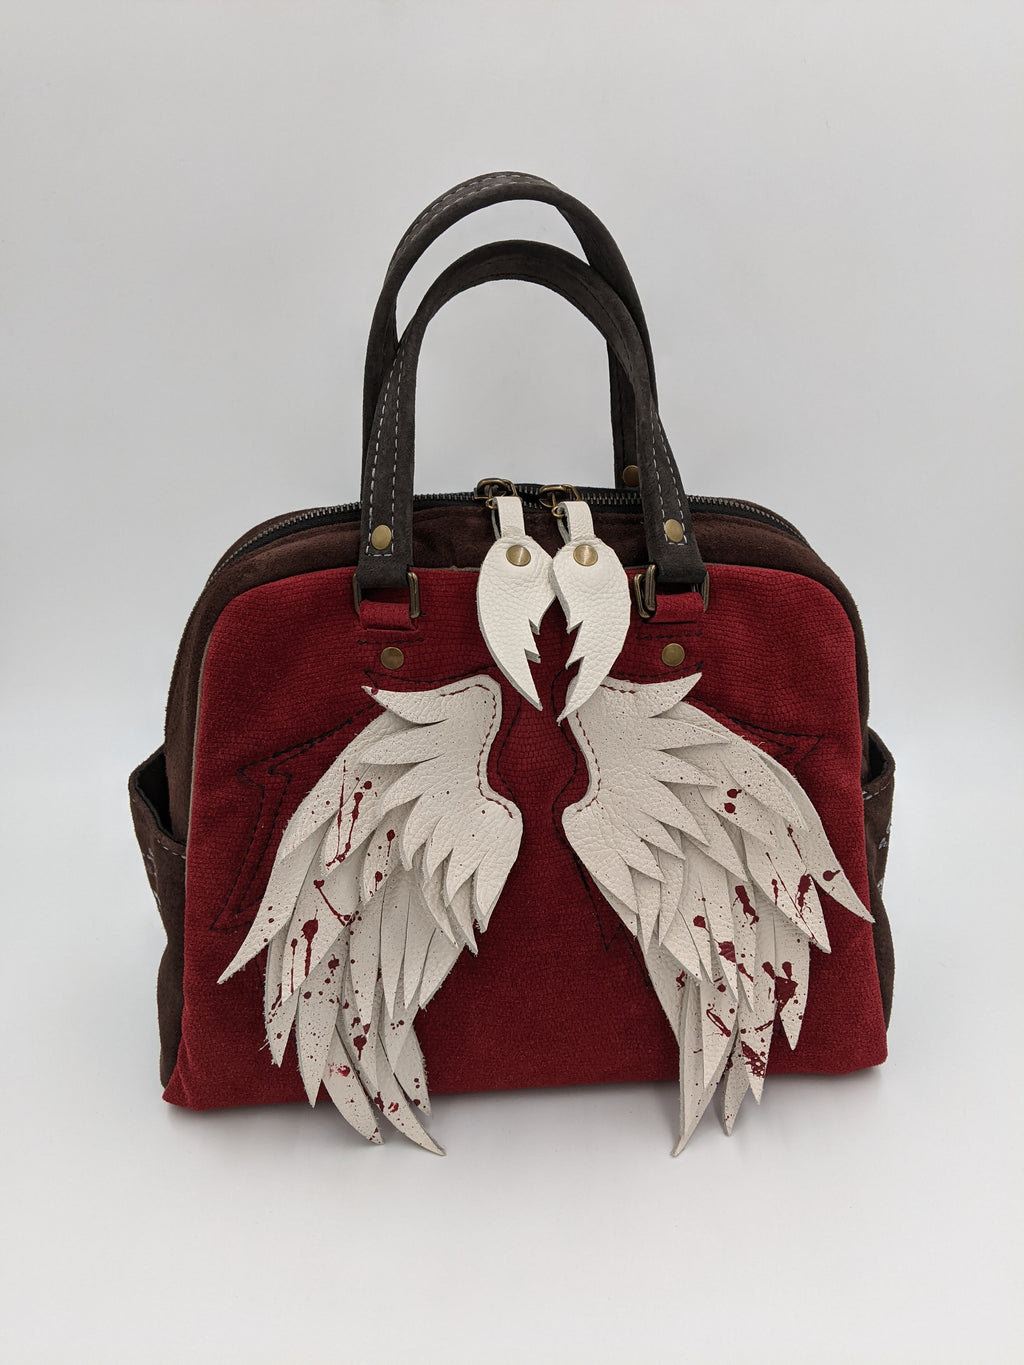 Red Italian leather satchel, shoulder bag, Supernatural inspired design